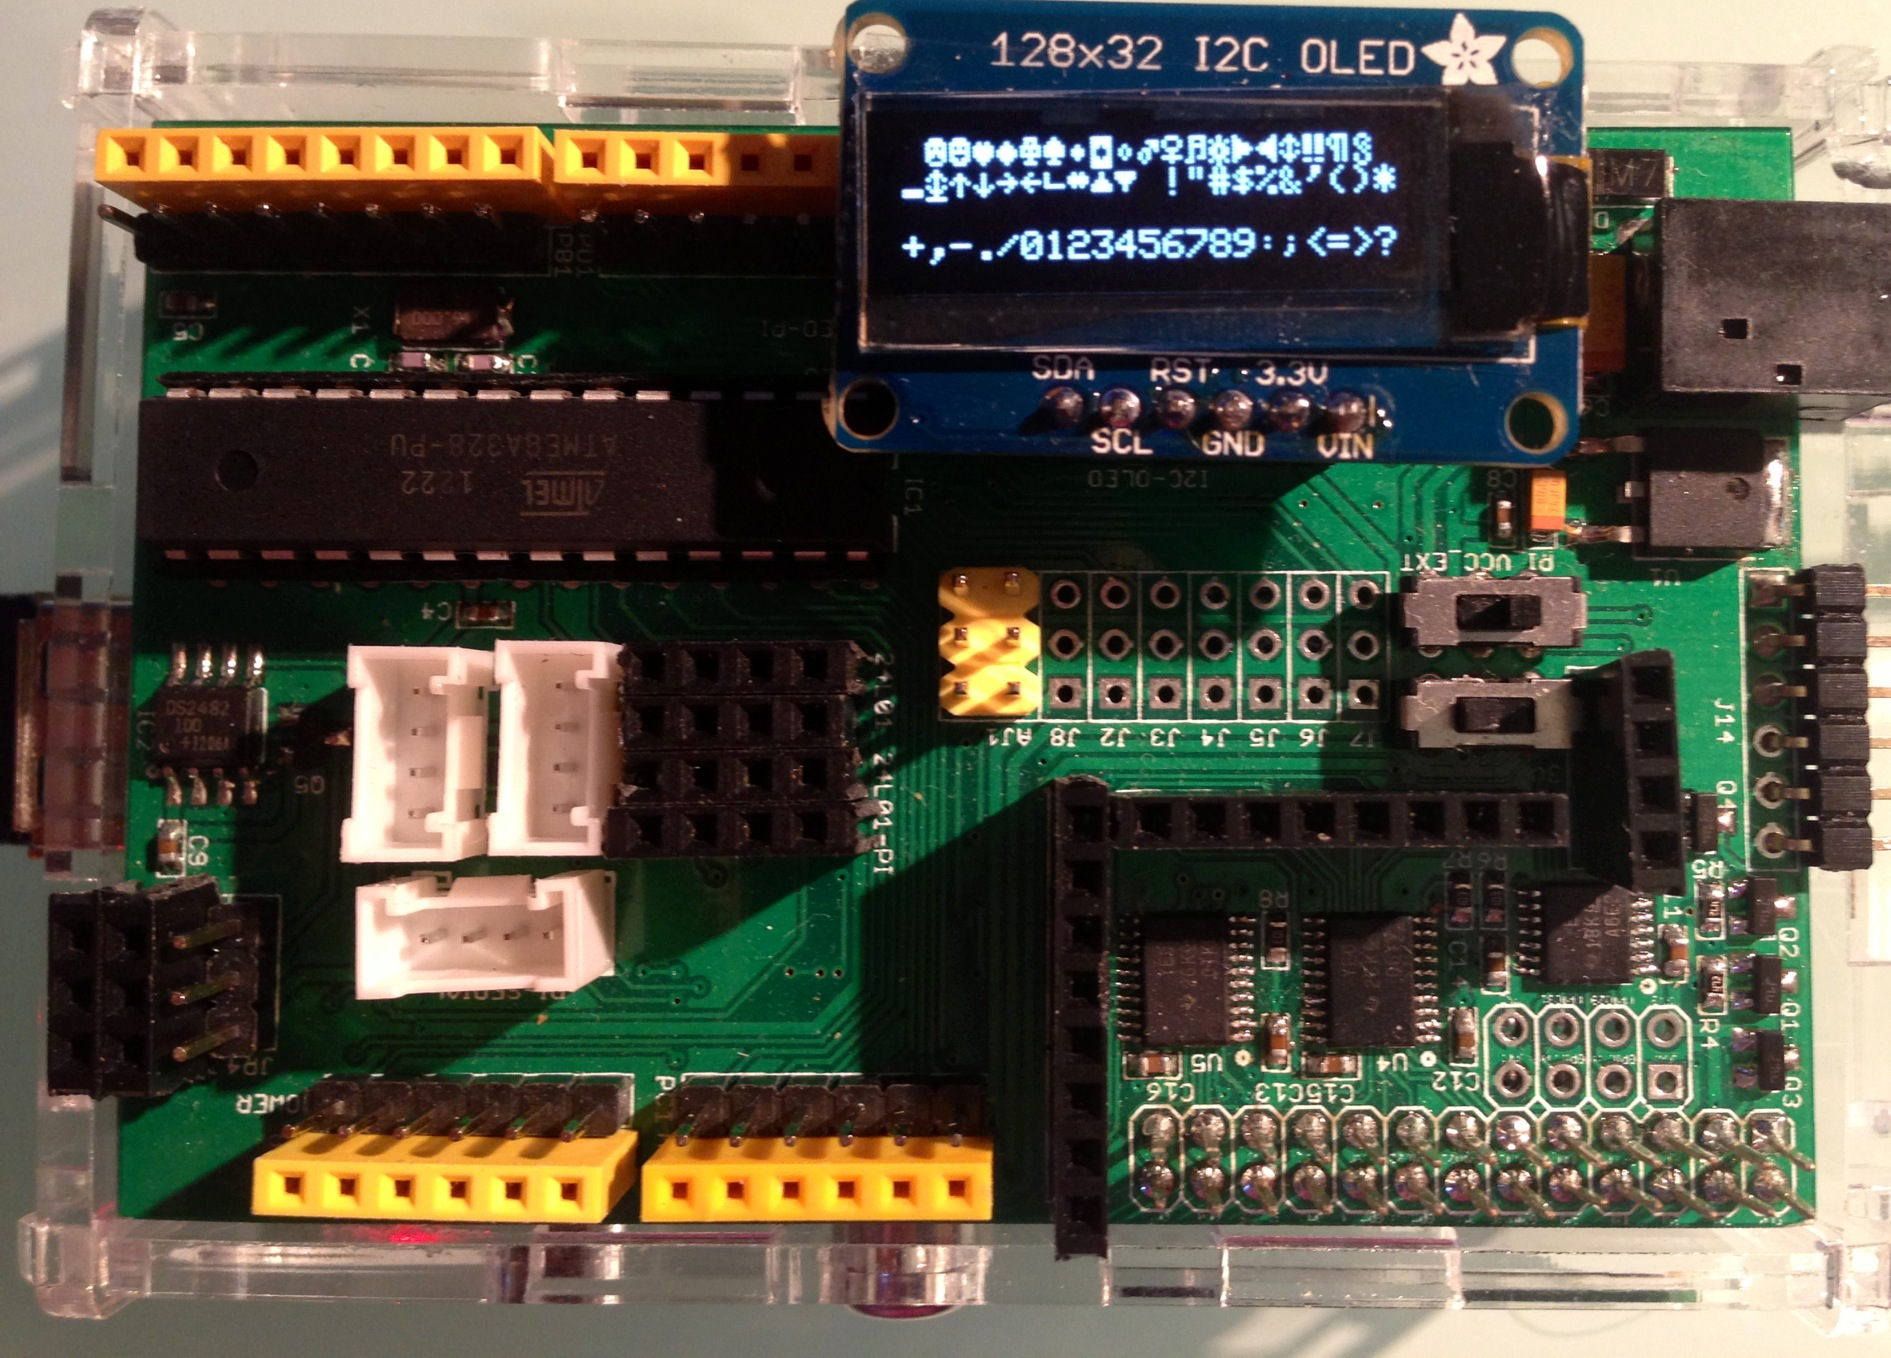 Adafruit Ssd1306 Oled Display Driver For Raspberry Pi Charless Blog Wiringpi Serial C I2c On Arduipi